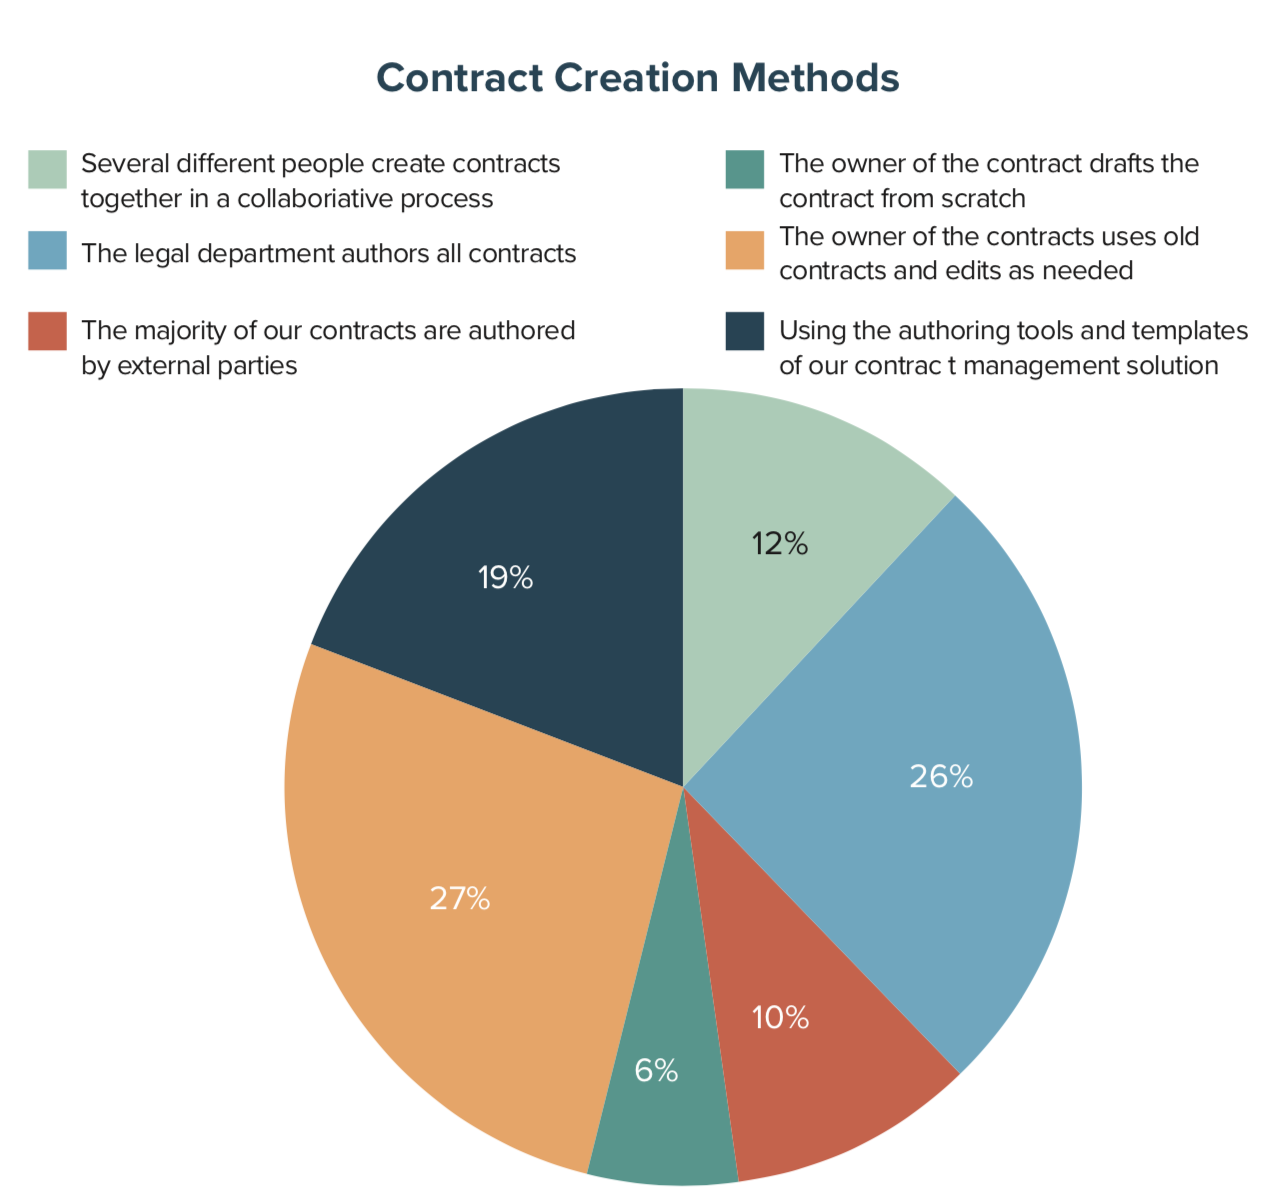 Contract Creation Methods